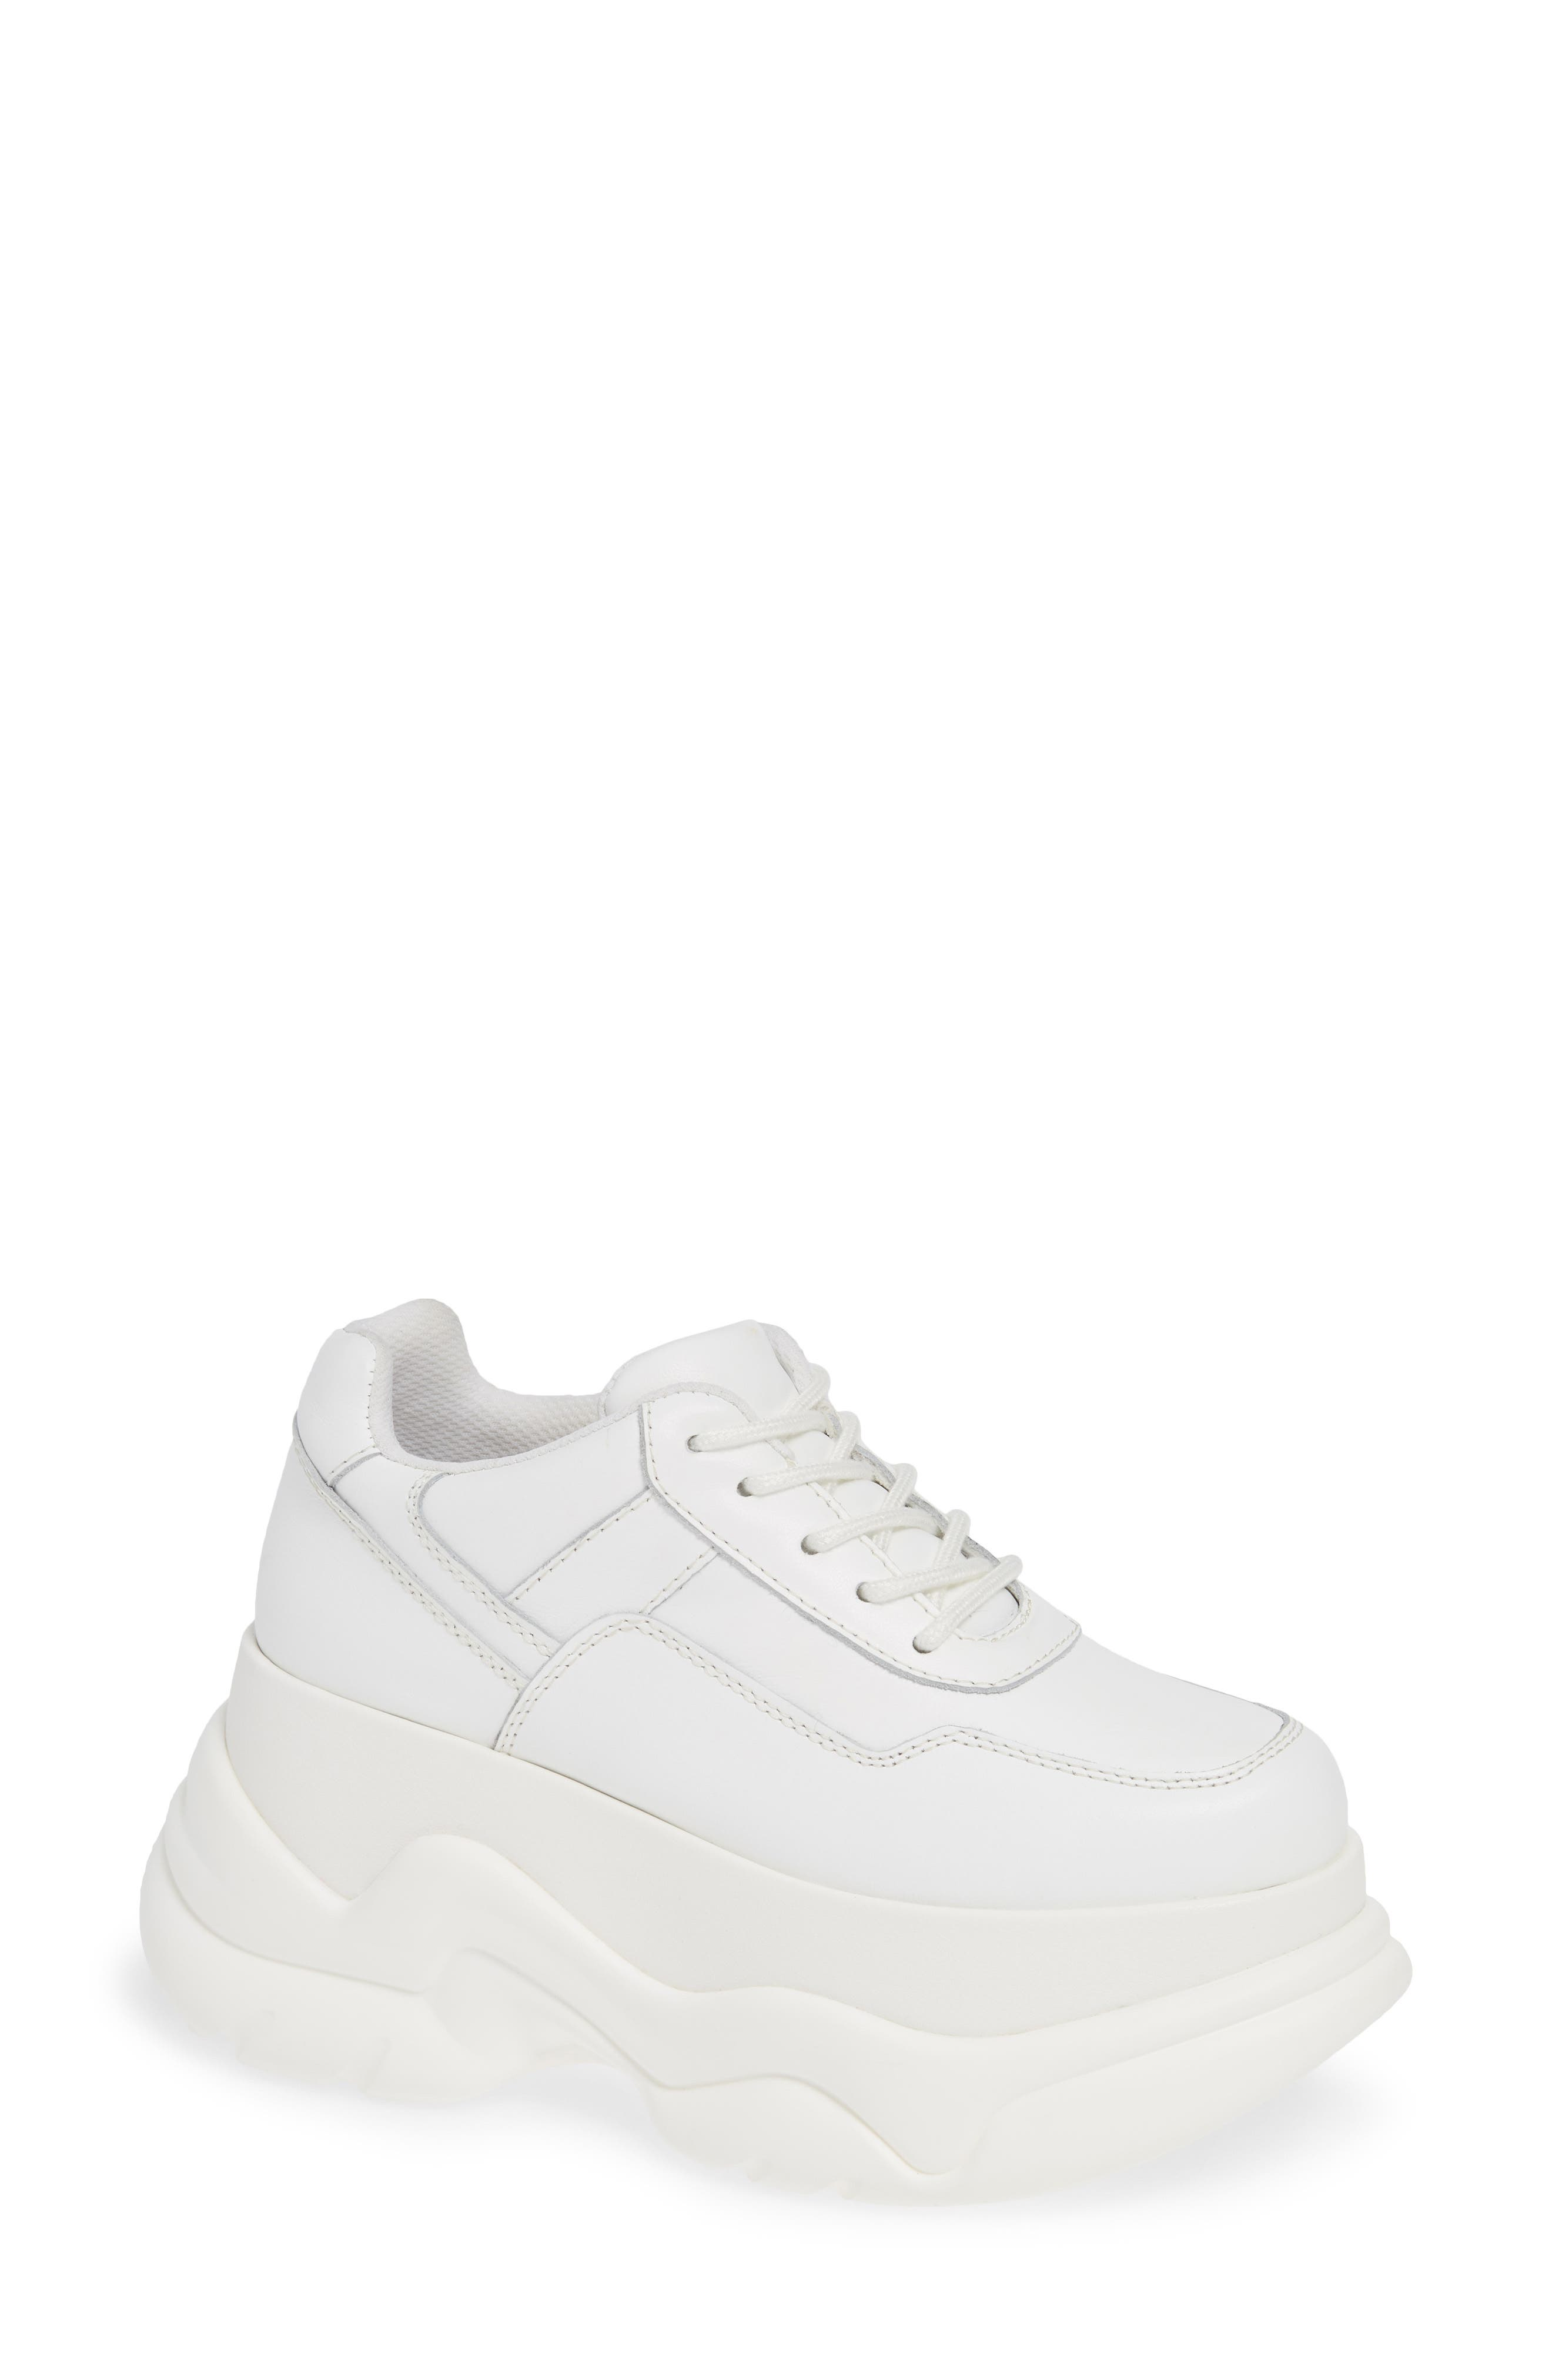 JEFFREY CAMPBELL, Most Def Wedge Sneaker, Main thumbnail 1, color, WHITE/ WHITE LEATHER